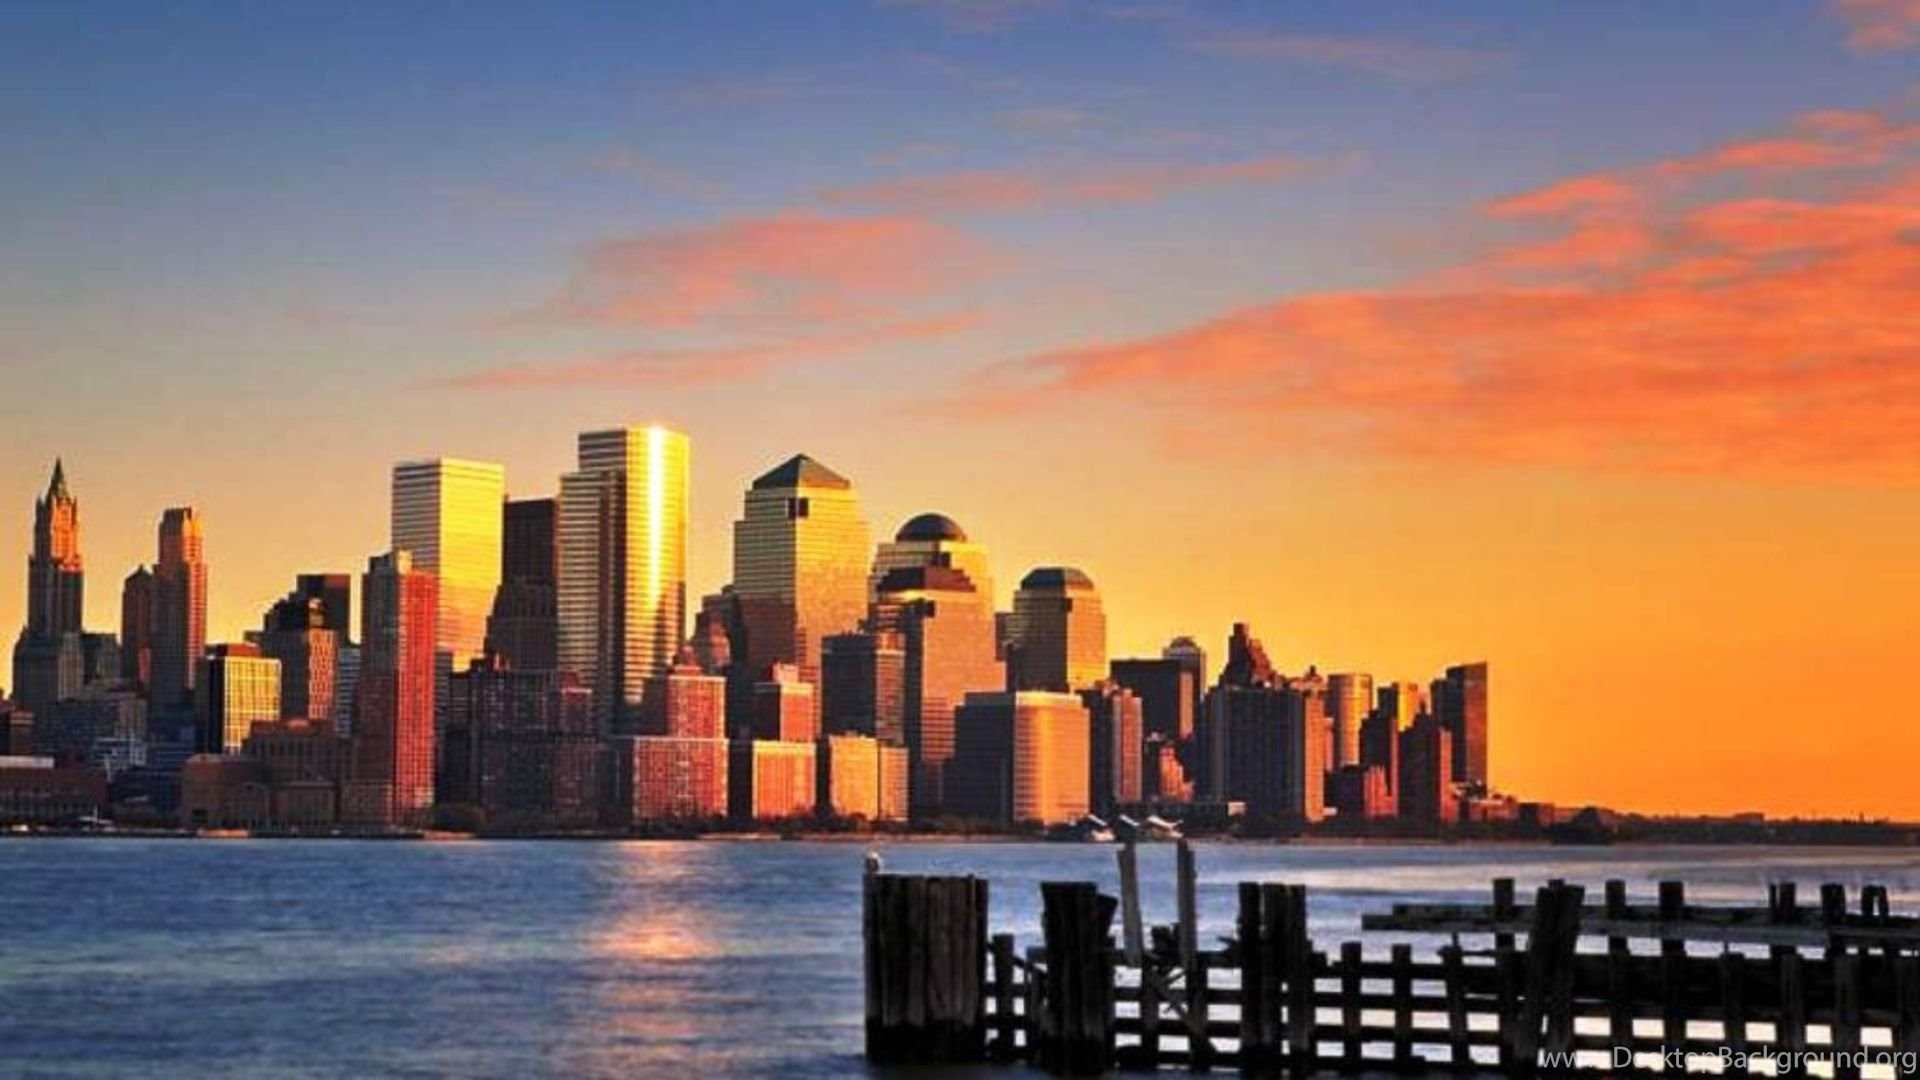 New york city skyline wallpapers 1900x1080 wallpapers hd - New york skyline computer wallpaper ...